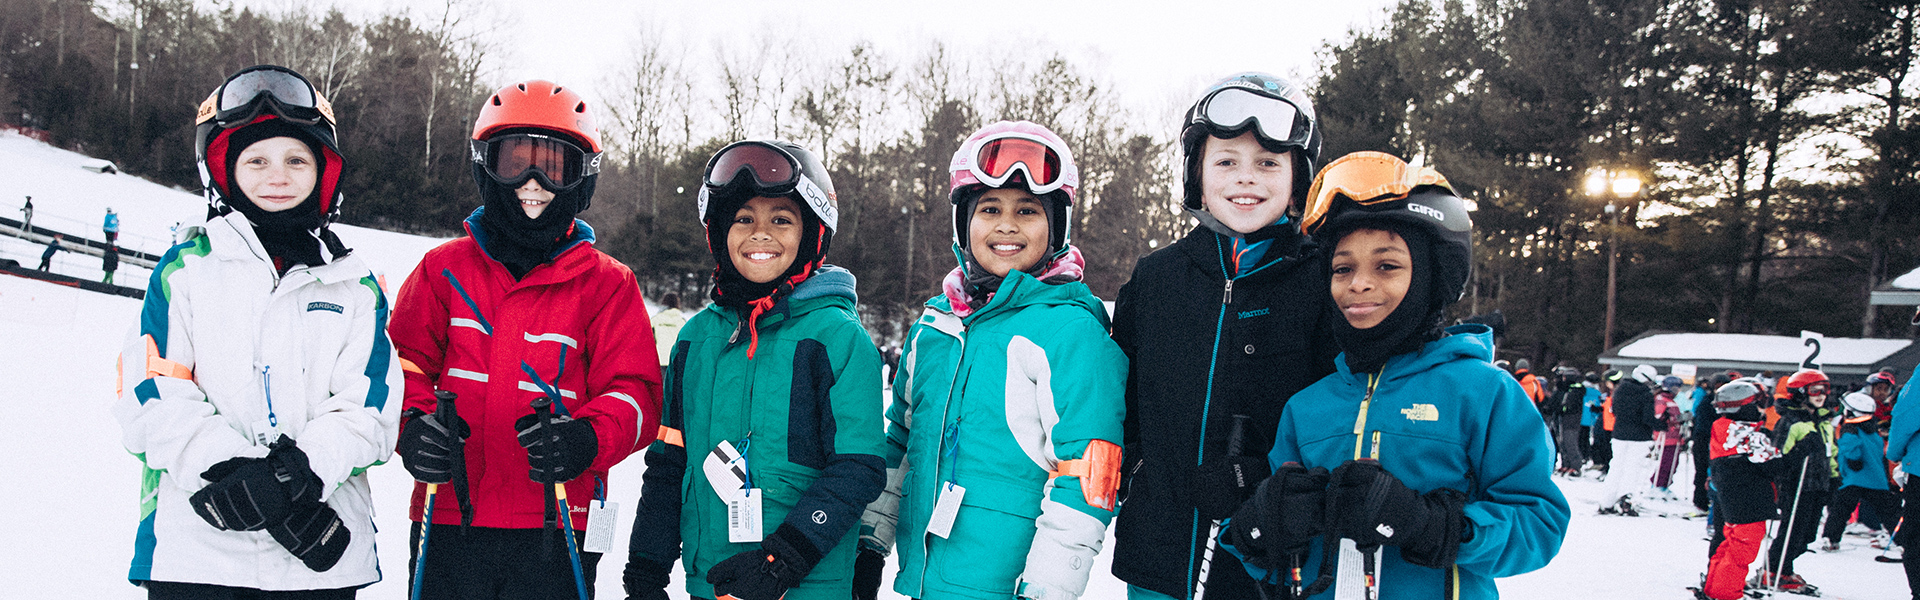 Image of weekly group skiers